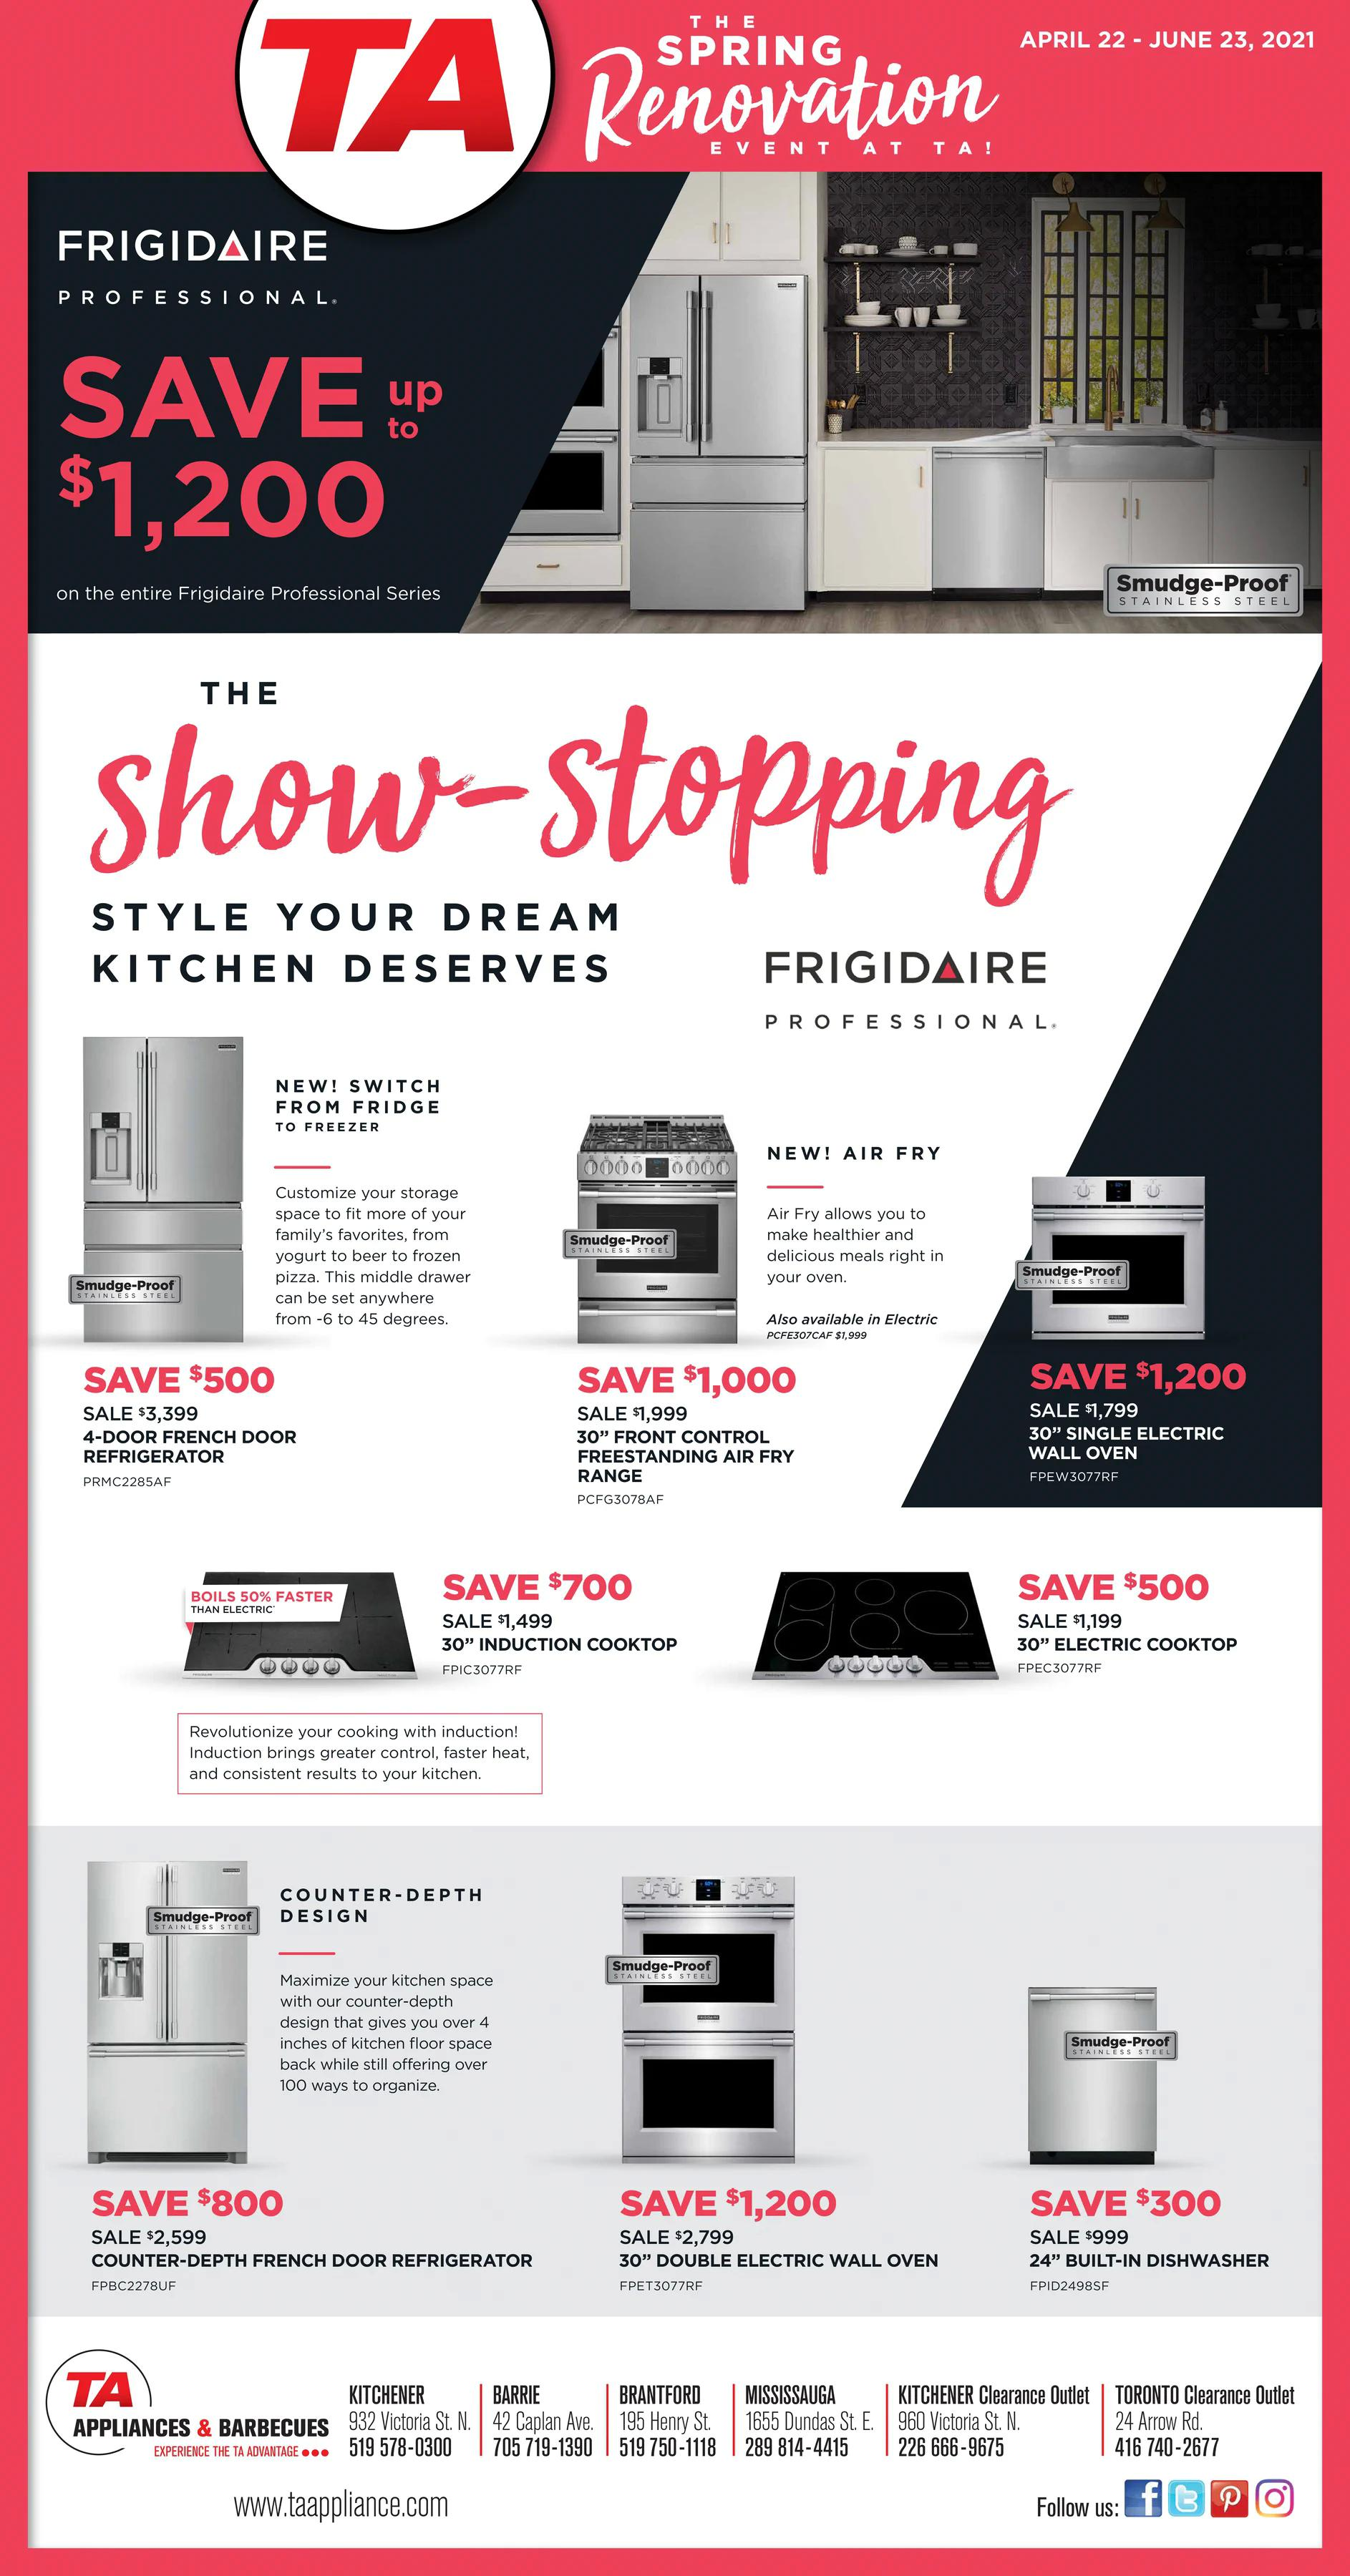 TA Appliance - The Spring Renovation - Page 2